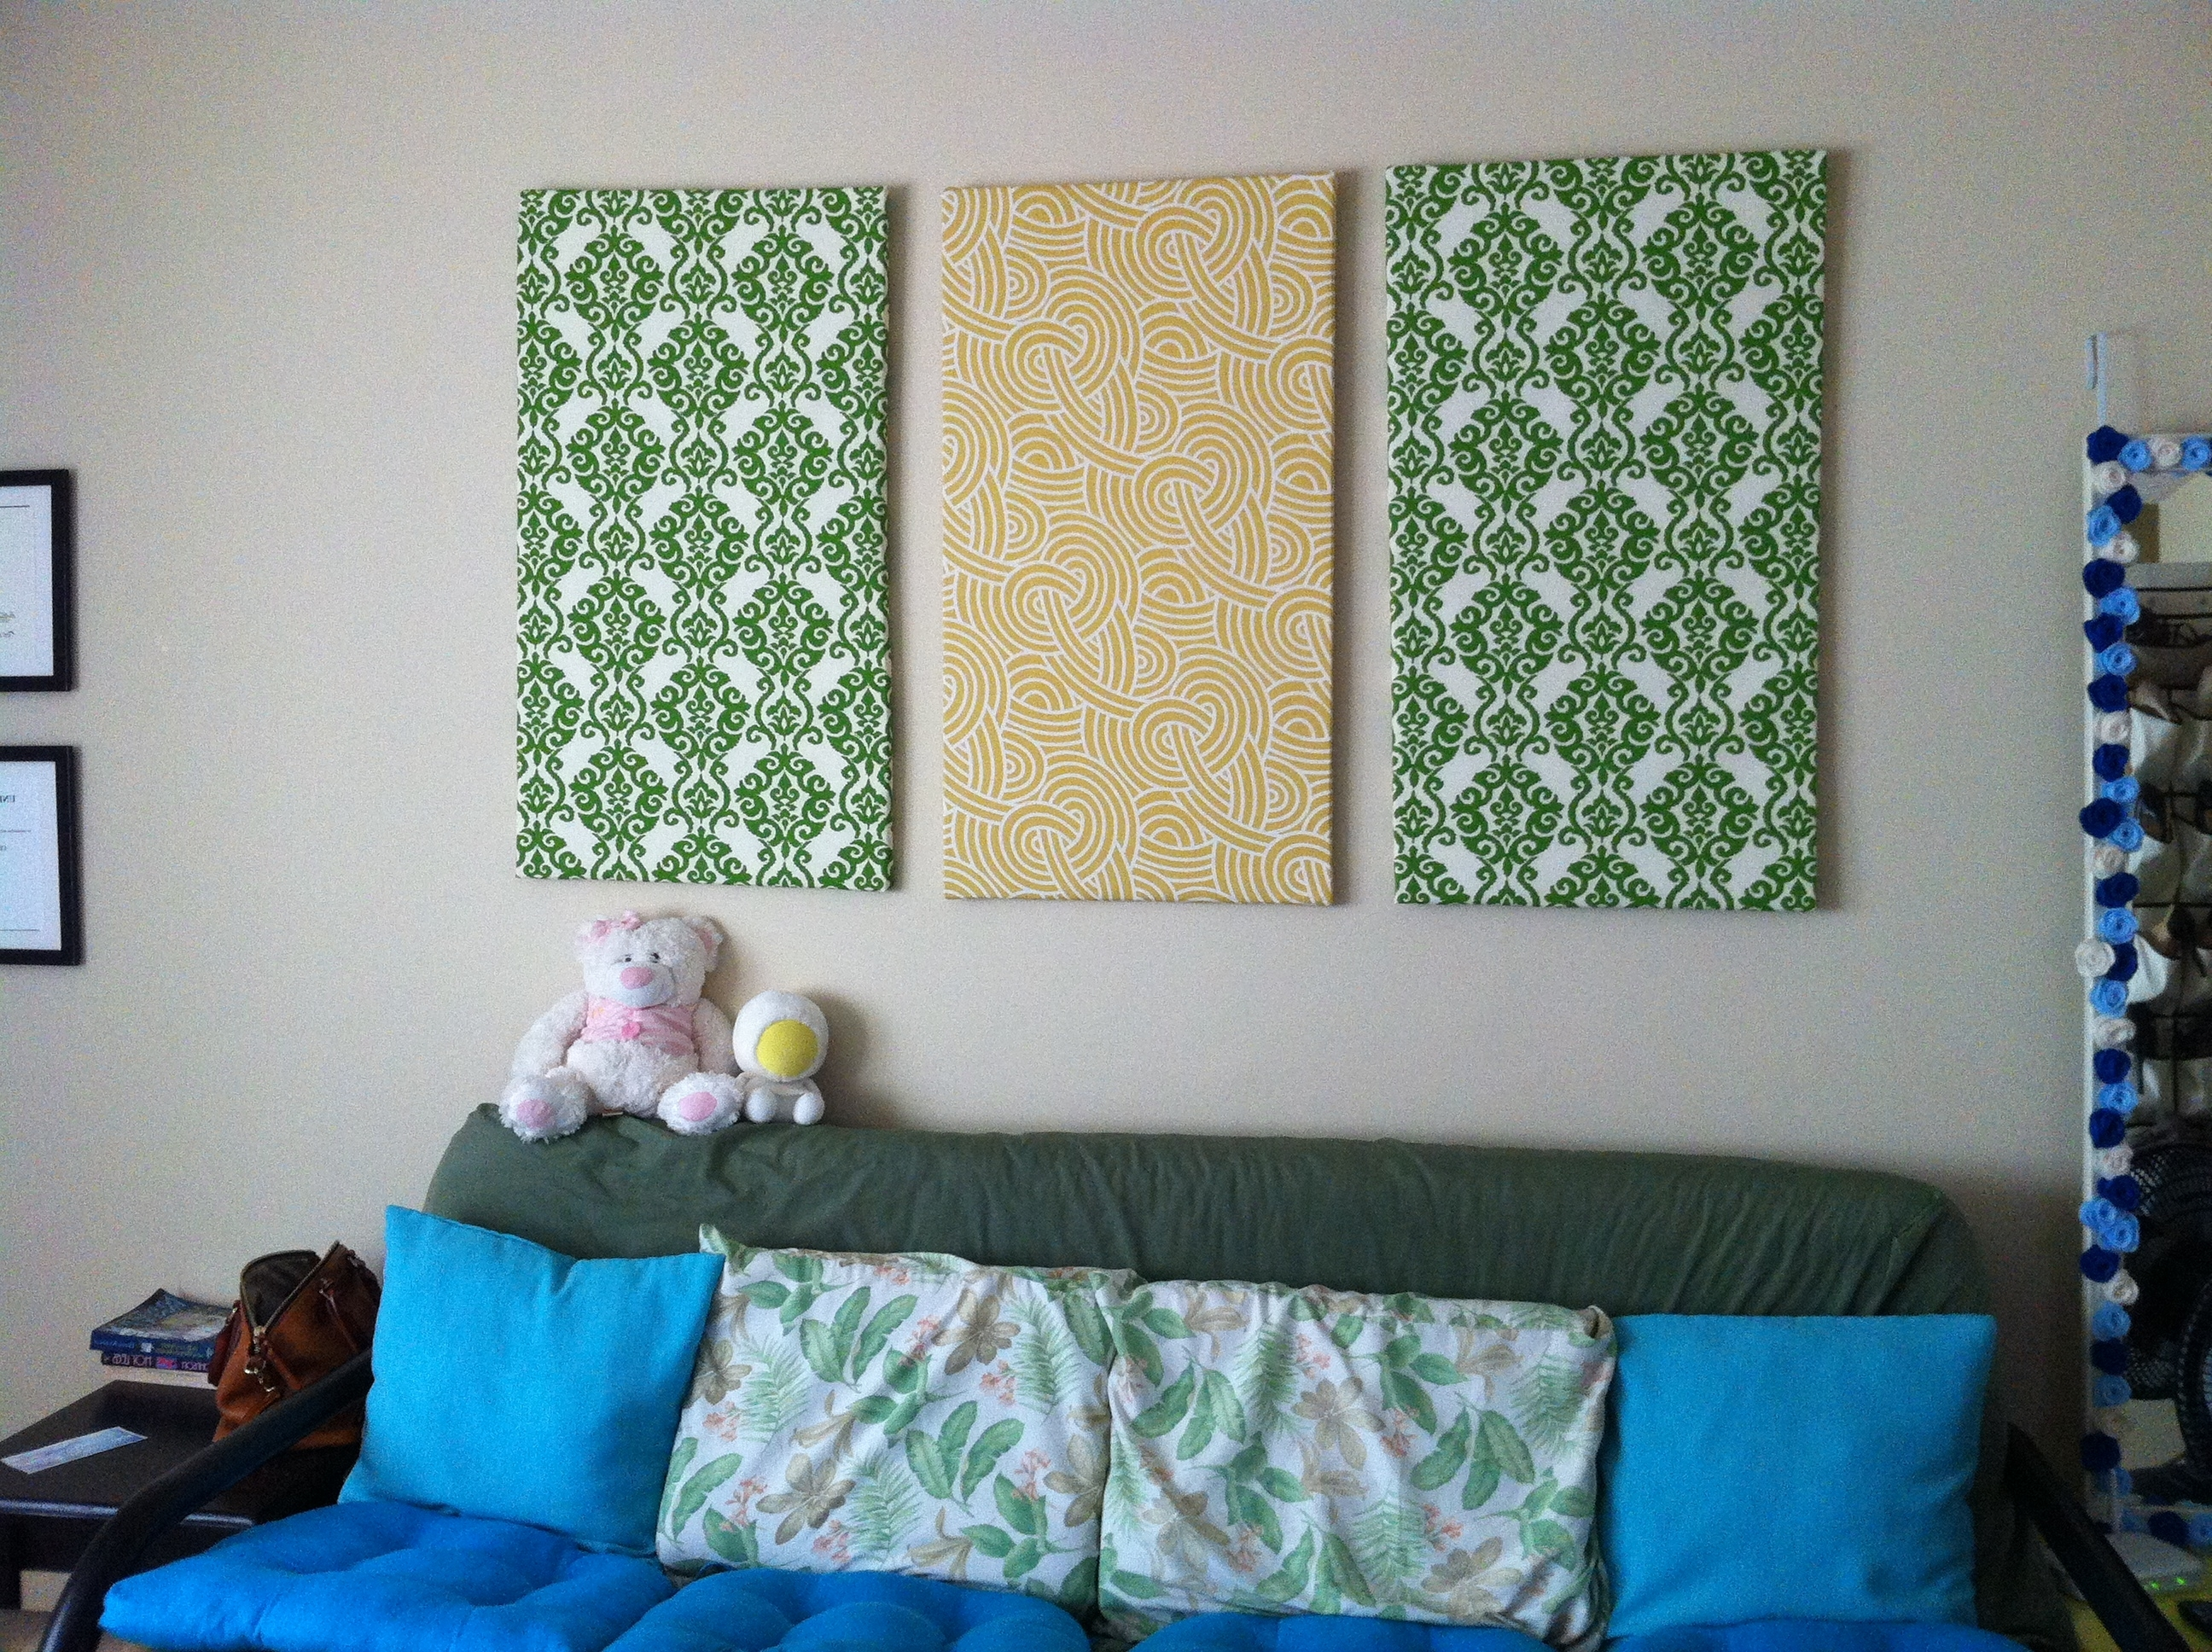 Art: Fabric Wall Art Diy Within Well Liked Diy Large Fabric Wall Art (View 13 of 15)